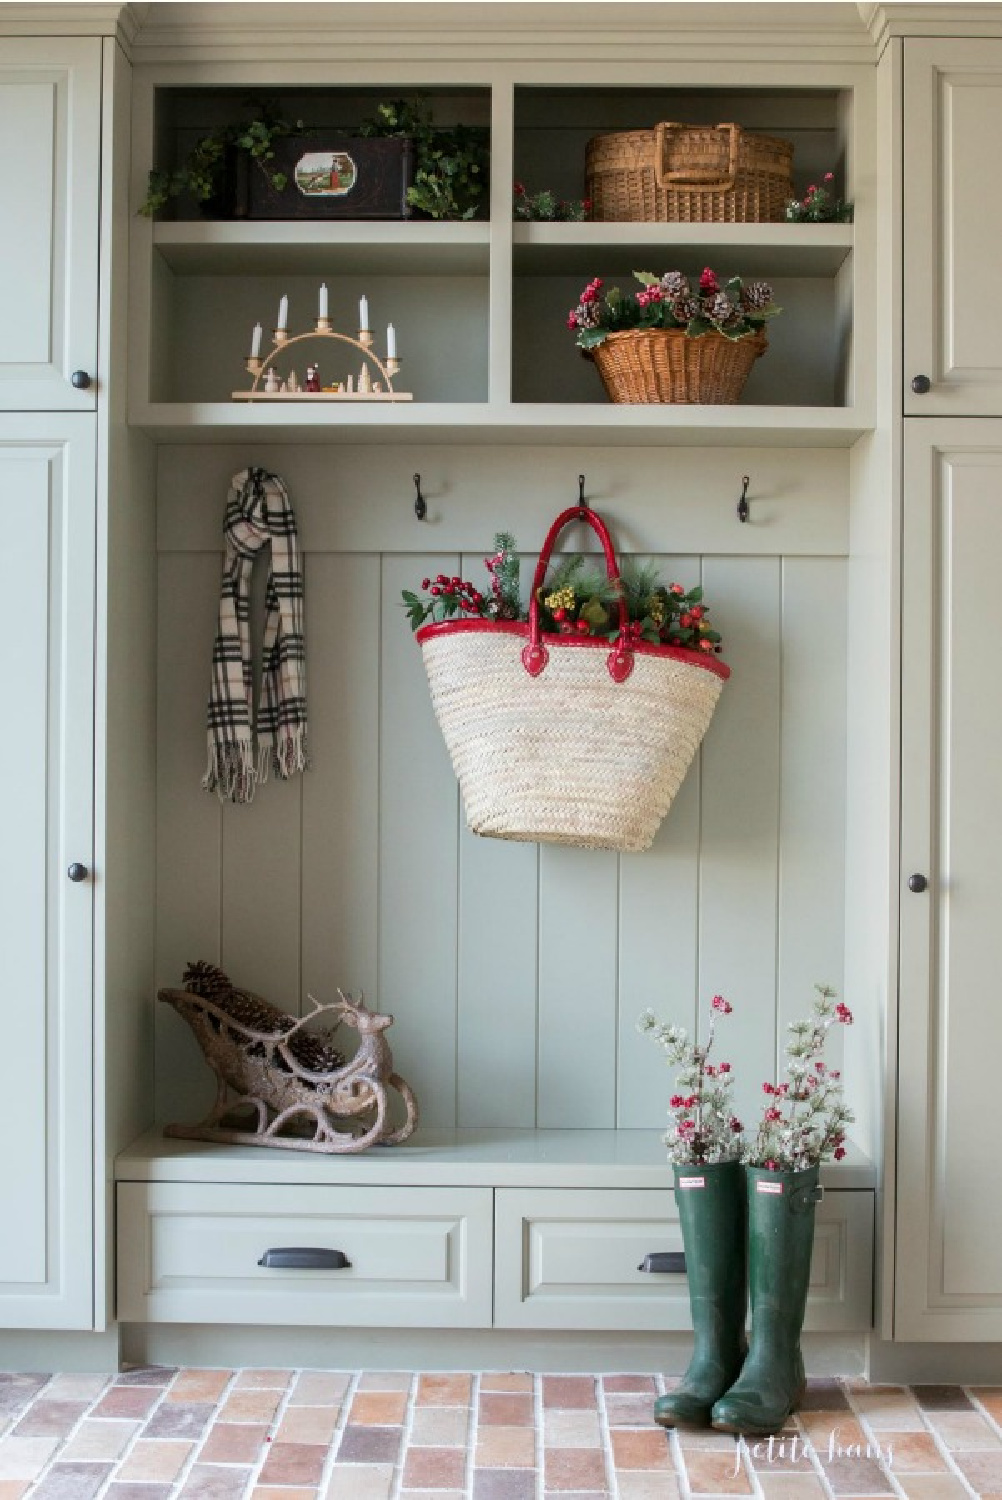 French country Christmas decor in a pale green mudroom with basket of greenery and boots - PetiteHaus. #christmasdecor #frenchcountrychristmas